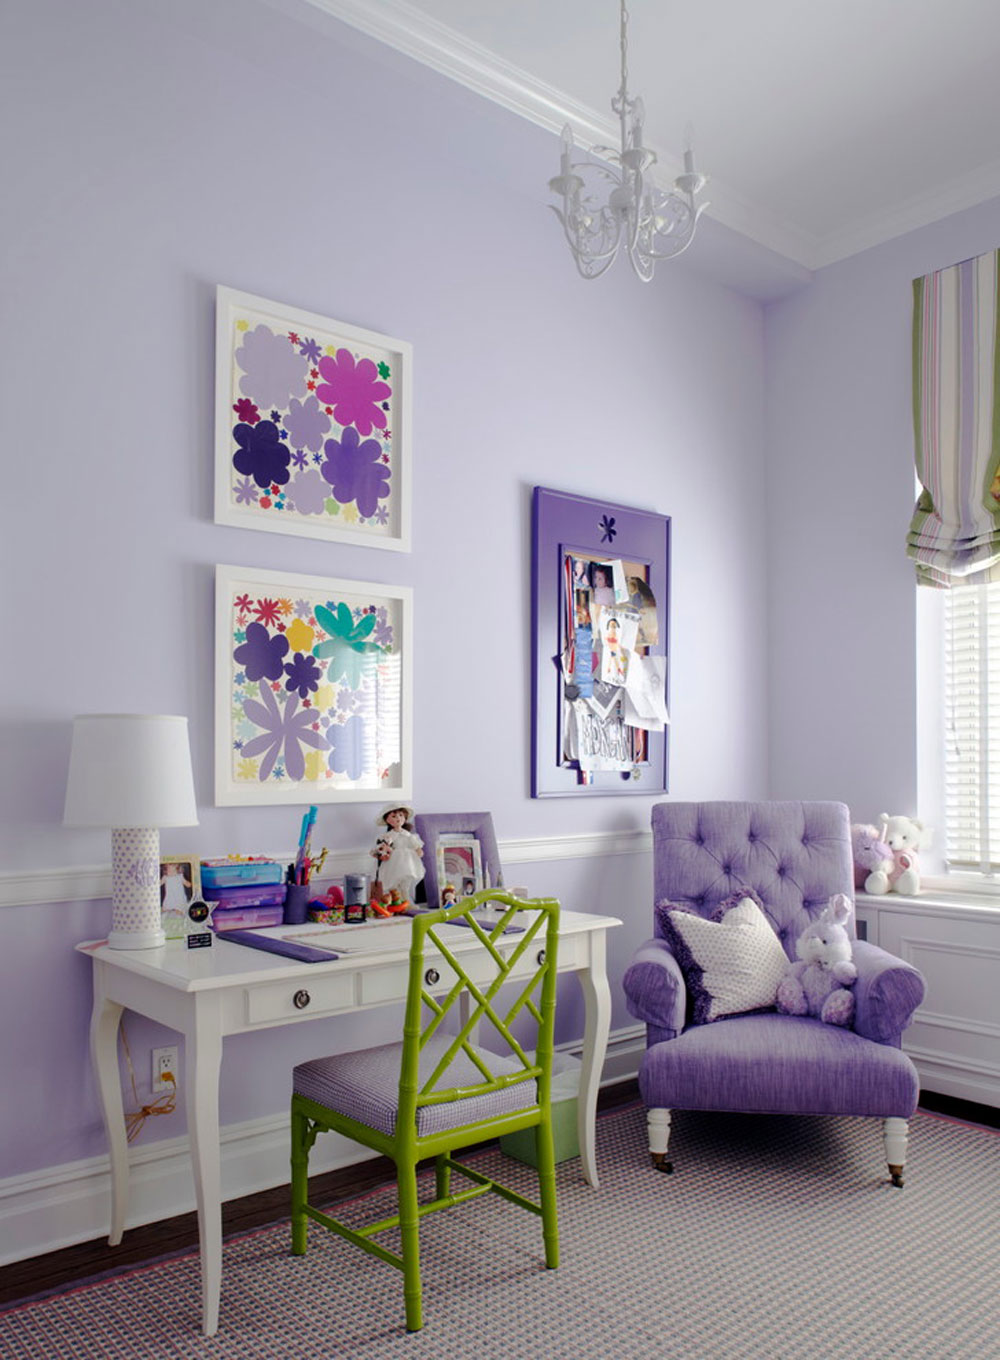 Downtown-traditional-Loft-by-Rusk-Renovations The hue of lavender and the colors that go with lavender